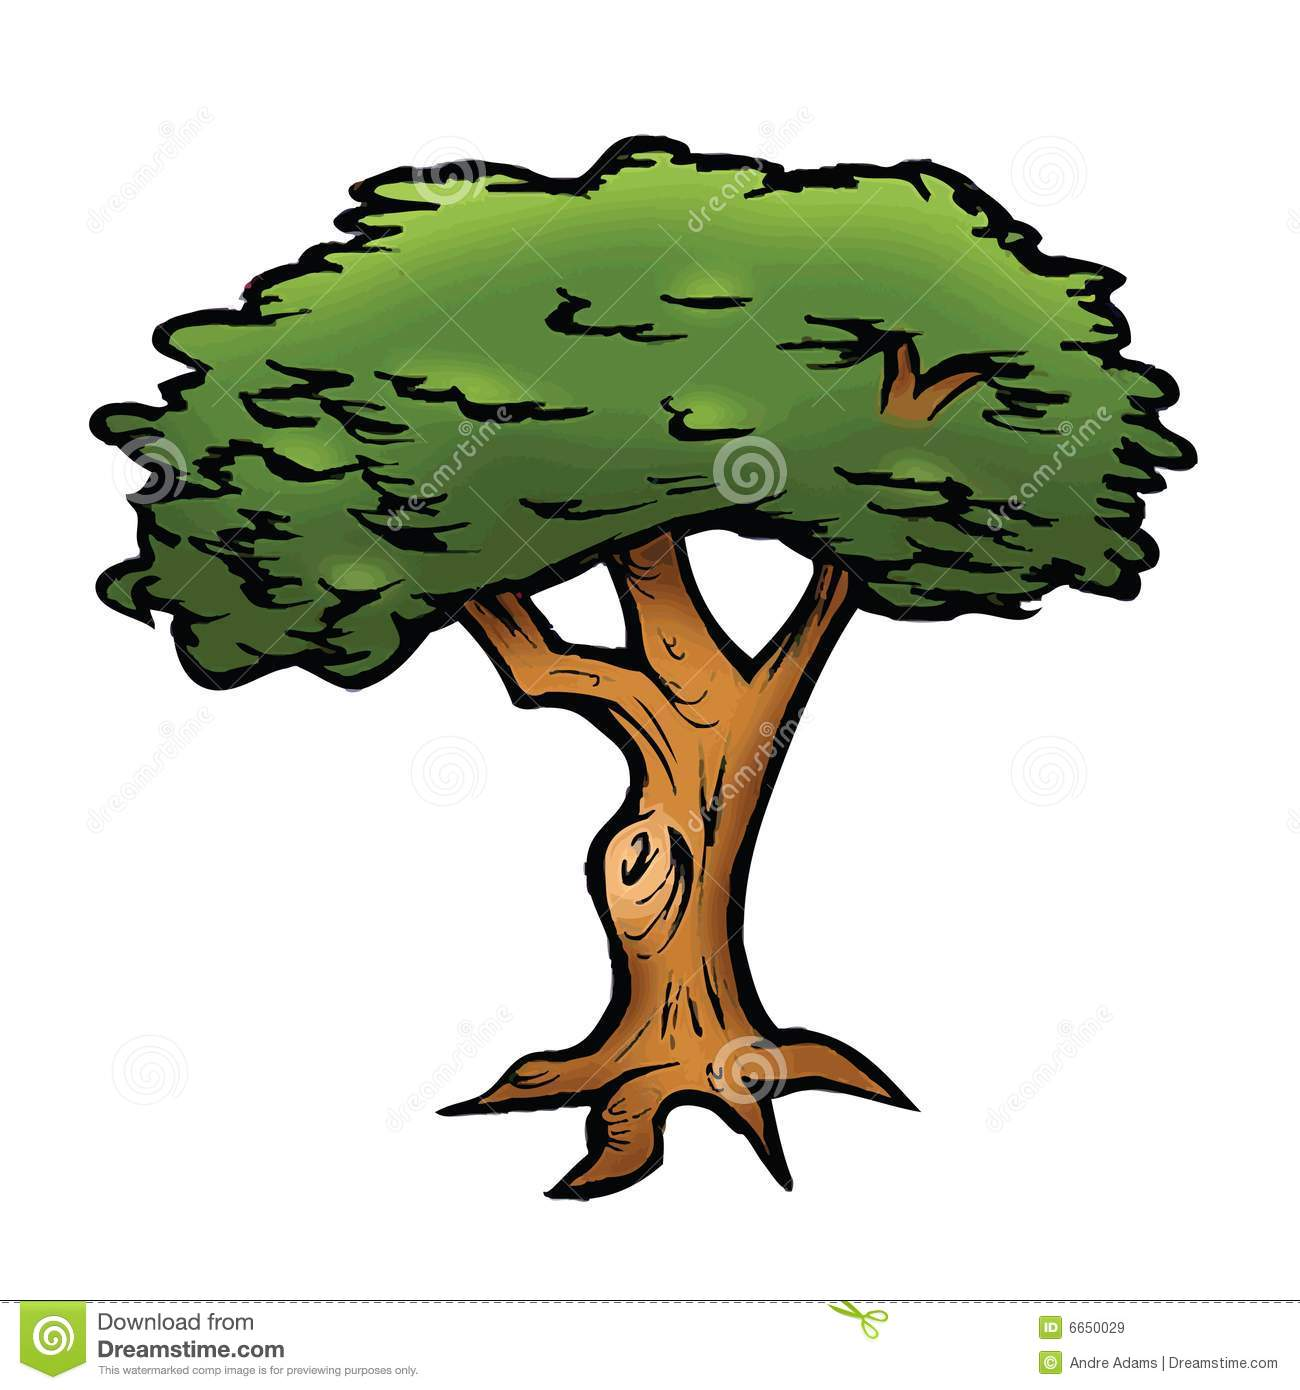 Oak Tree Cartoon Pictures Images amp Photos  Photobucket